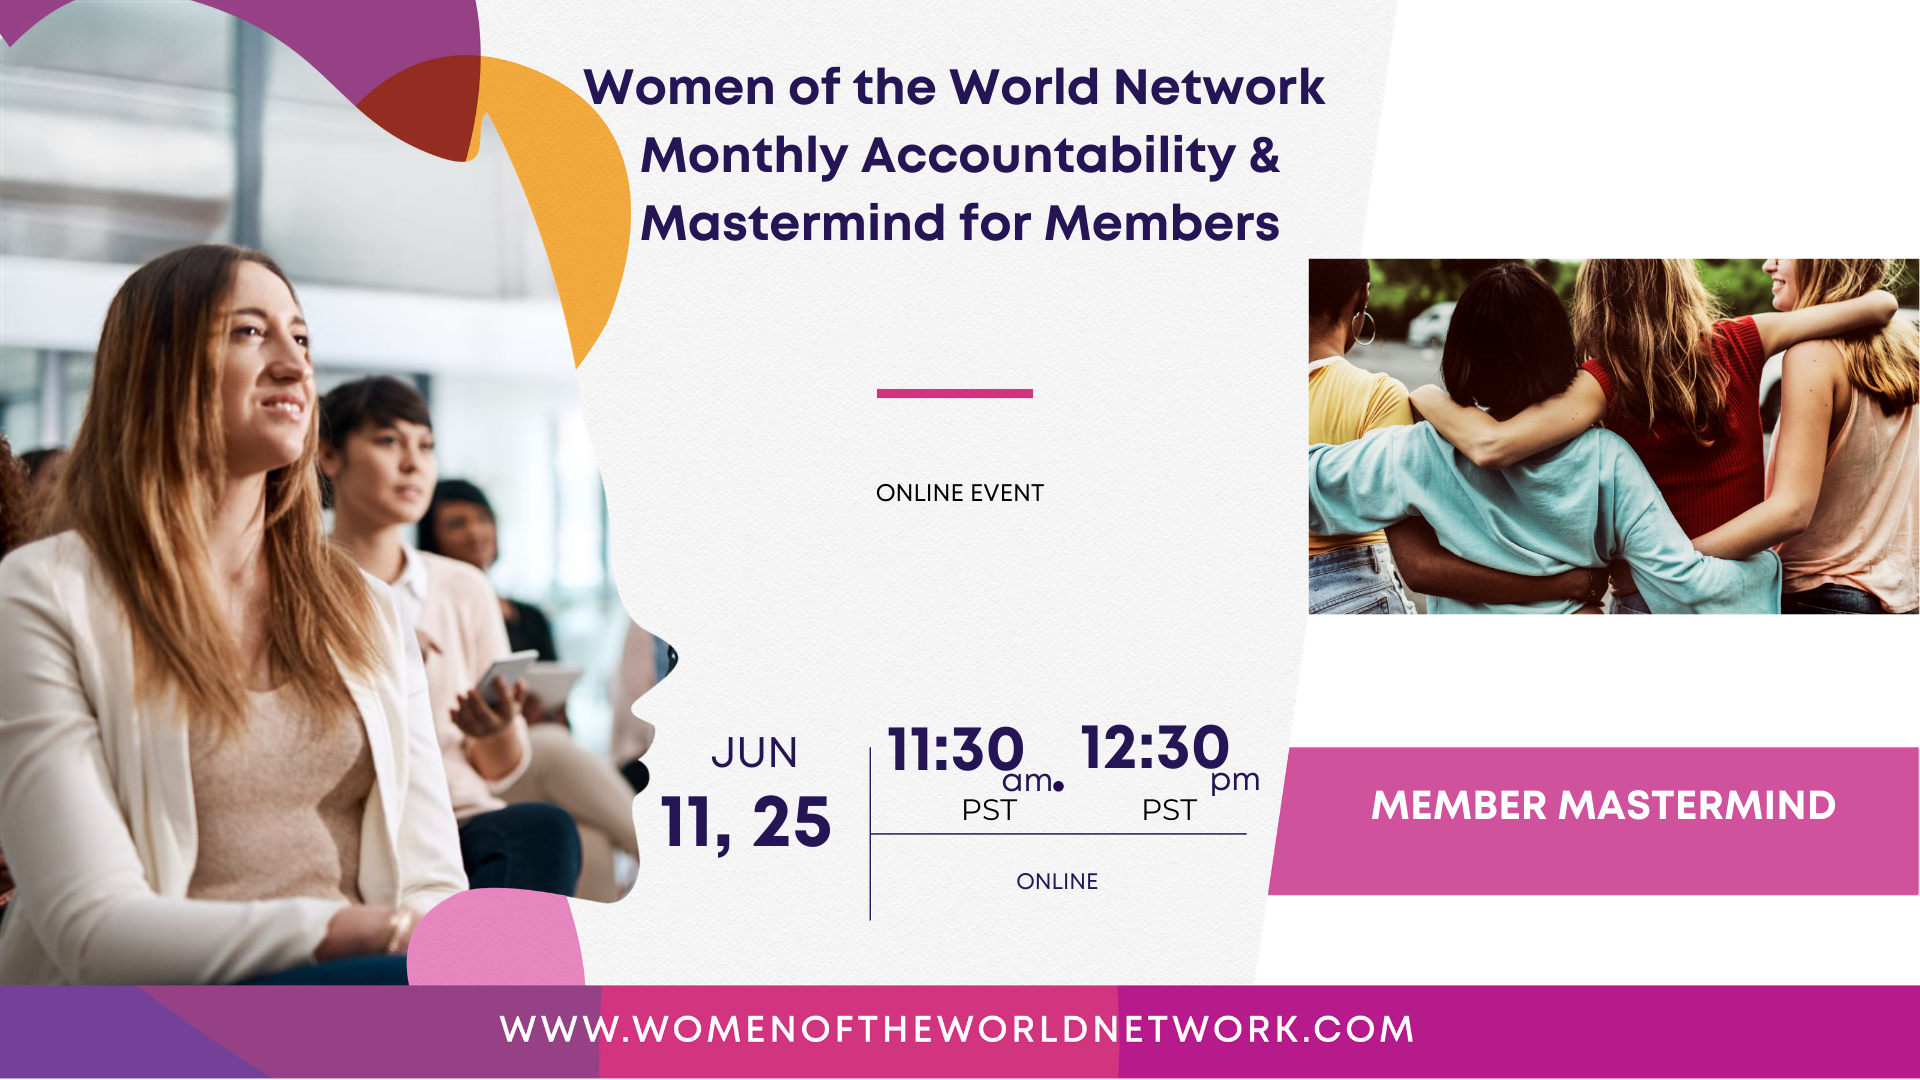 Women of the World Network: Member Mastermind